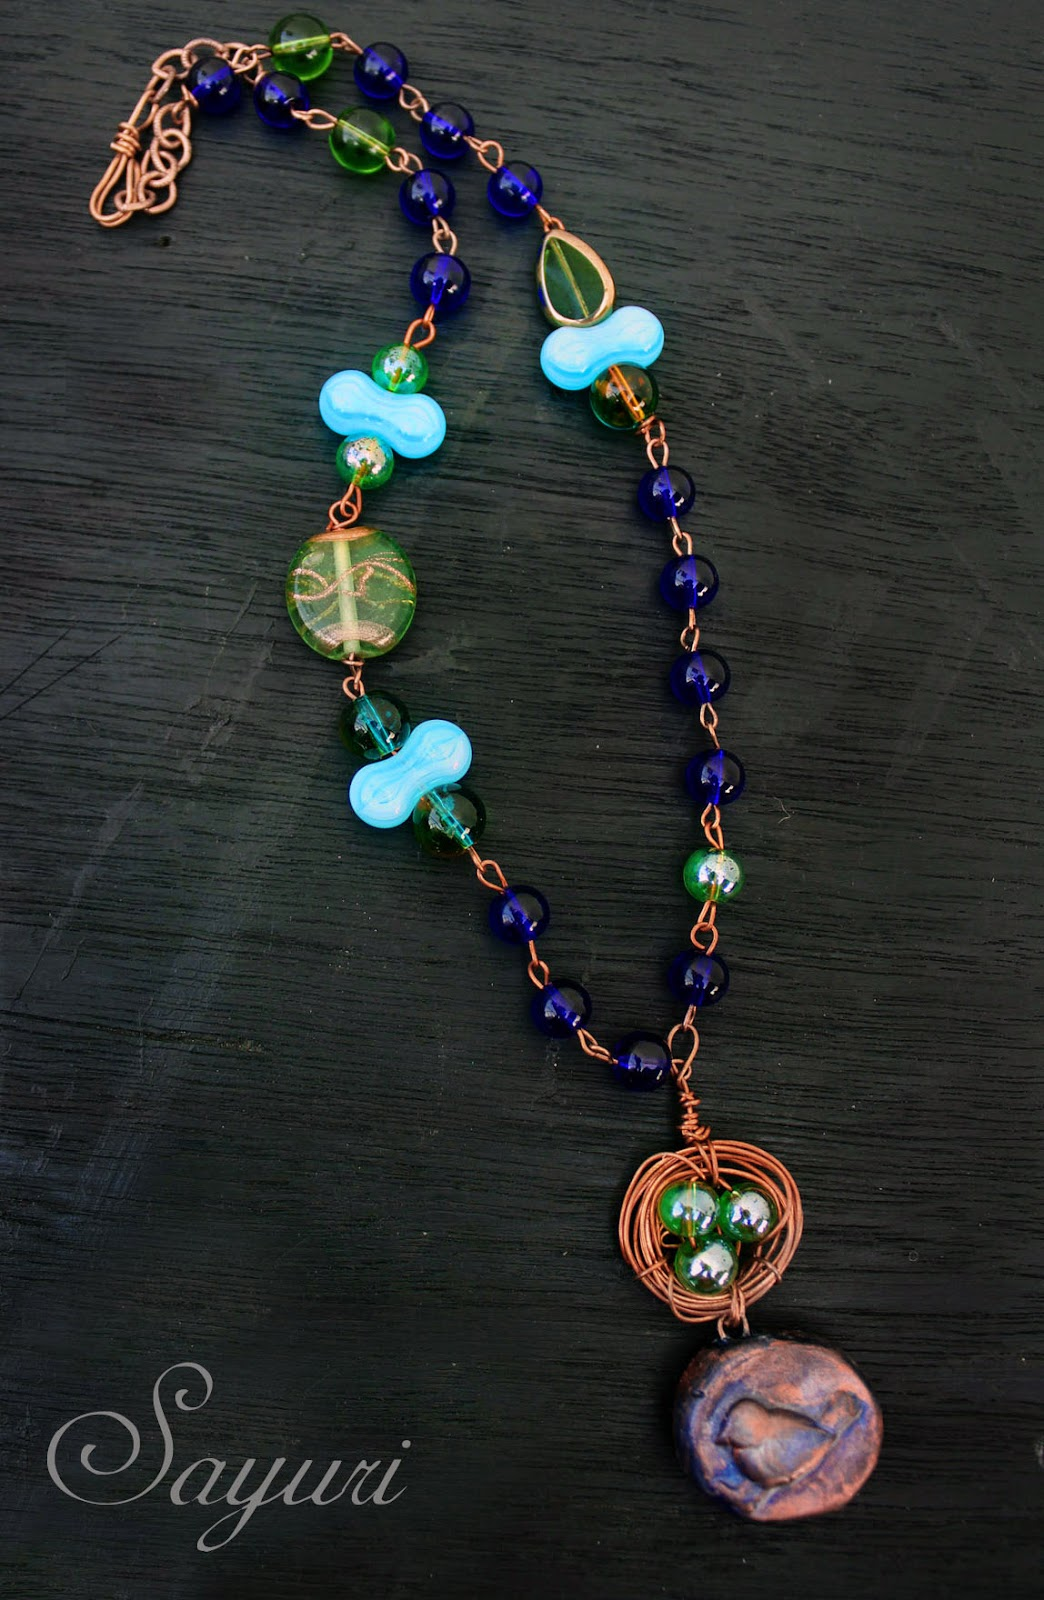 Emerald and Sapphire Bird's nest necklace